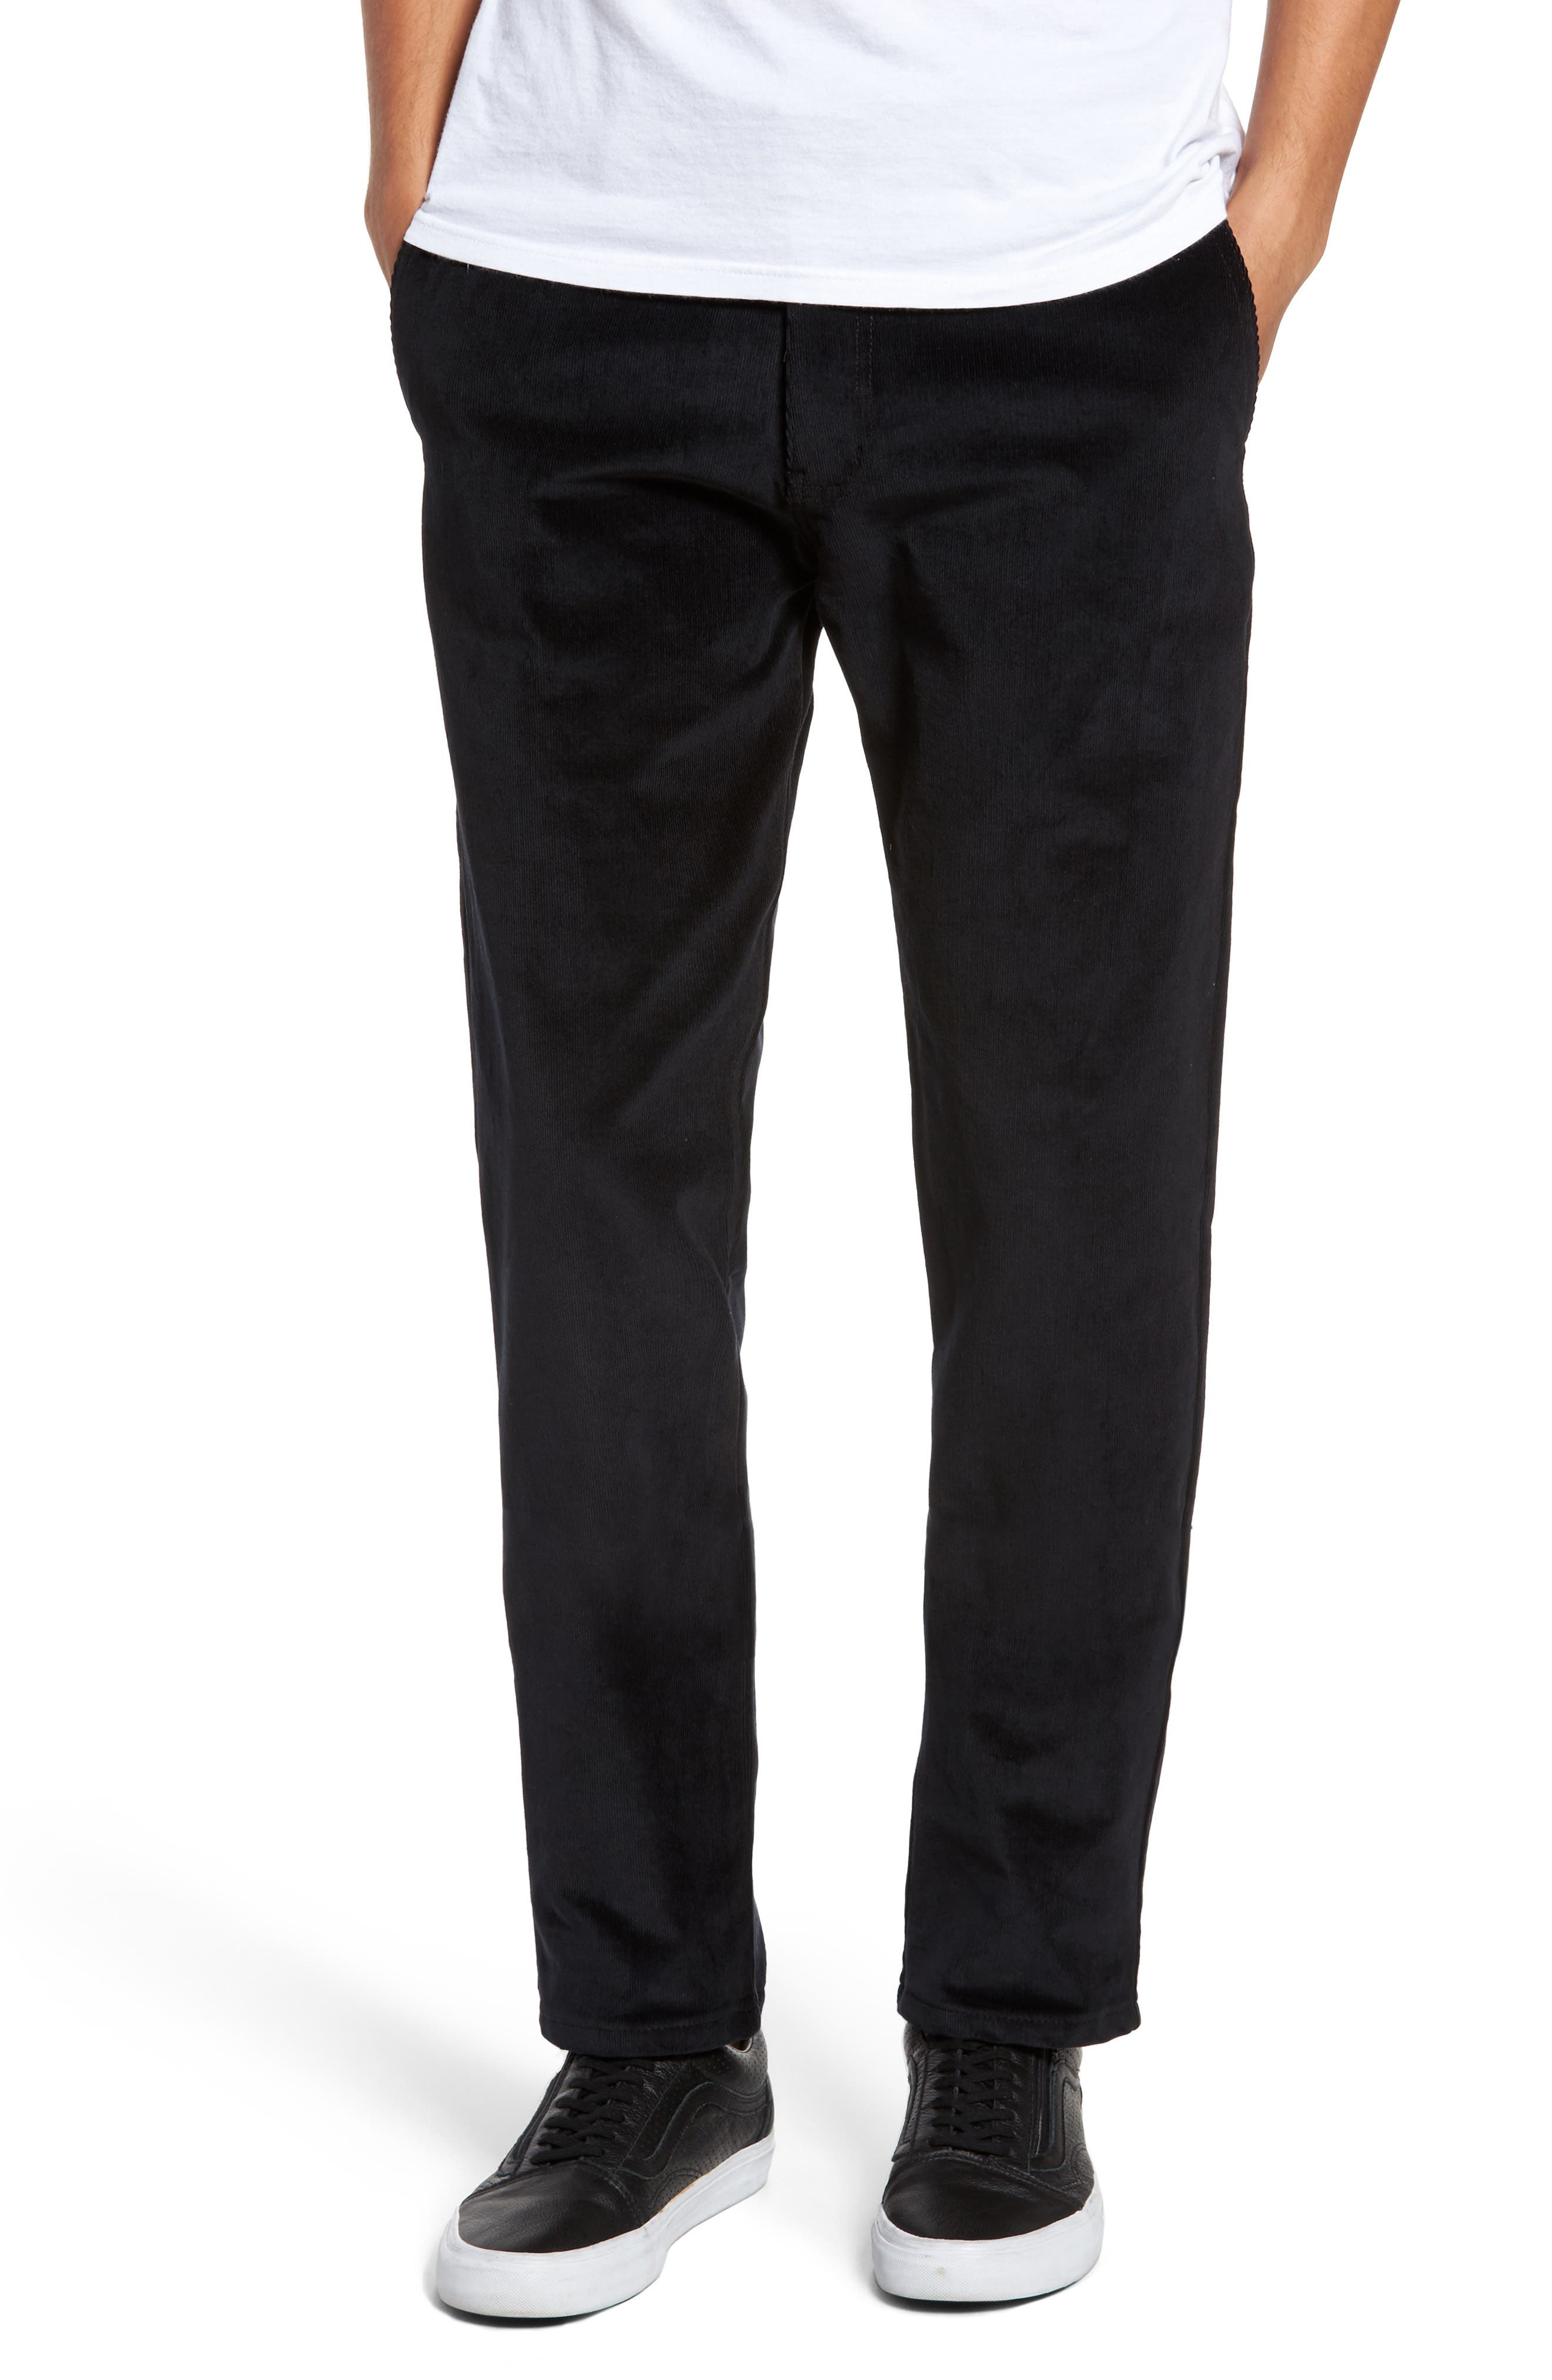 Naked & Famous Slim Chino Slim Fit Corduroy Pants,                         Main,                         color, 001